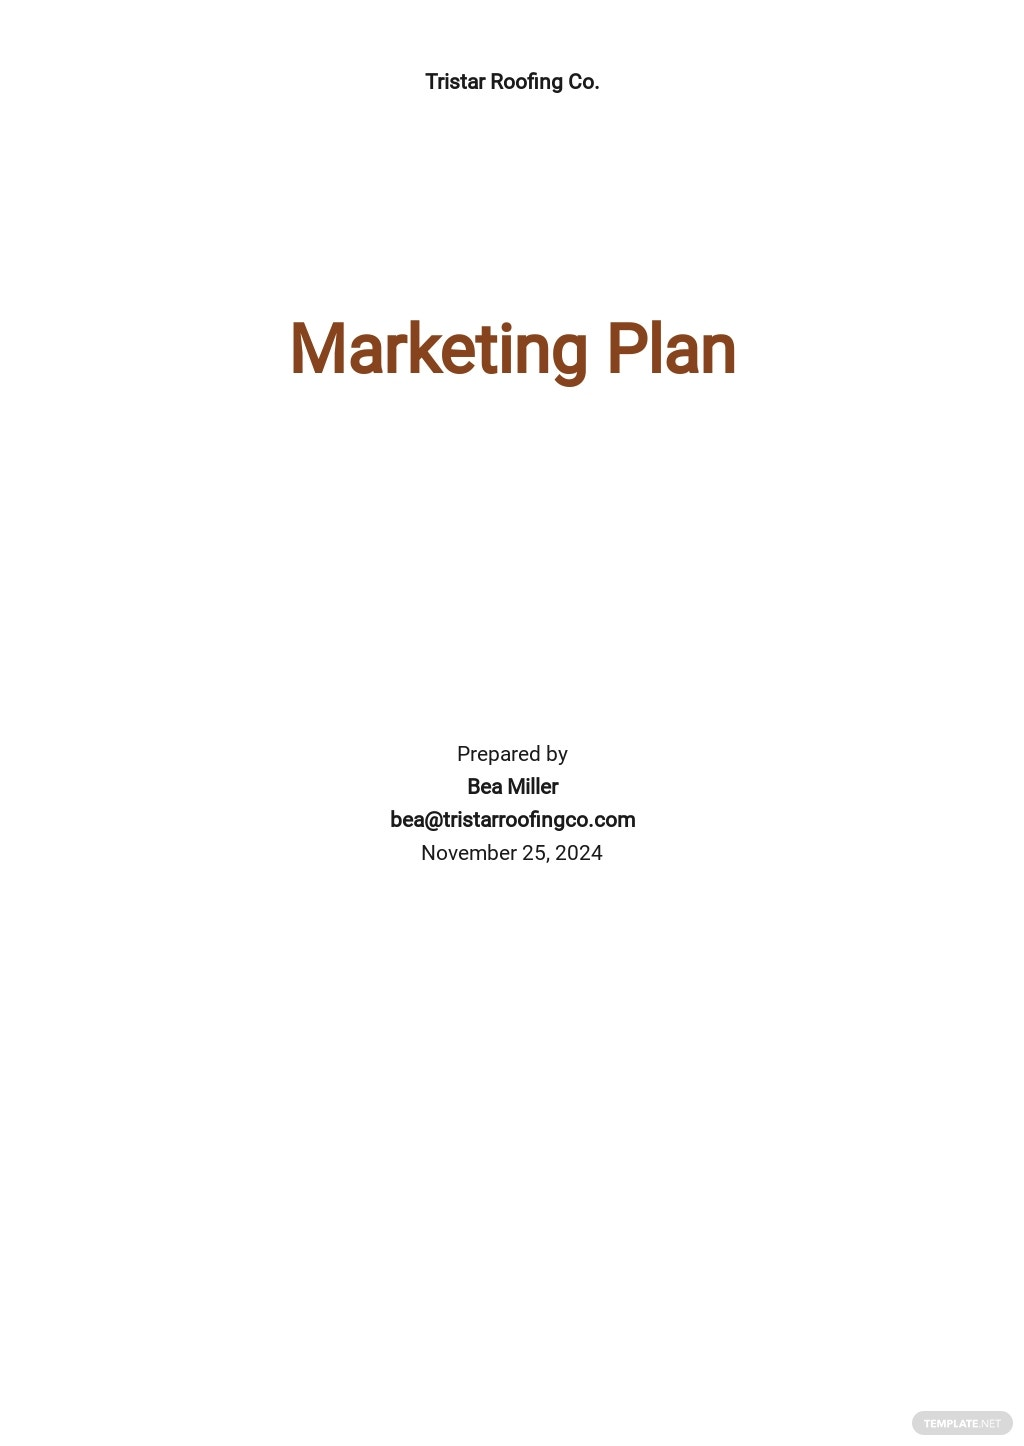 Roofing Company Marketing Plan Template.jpe